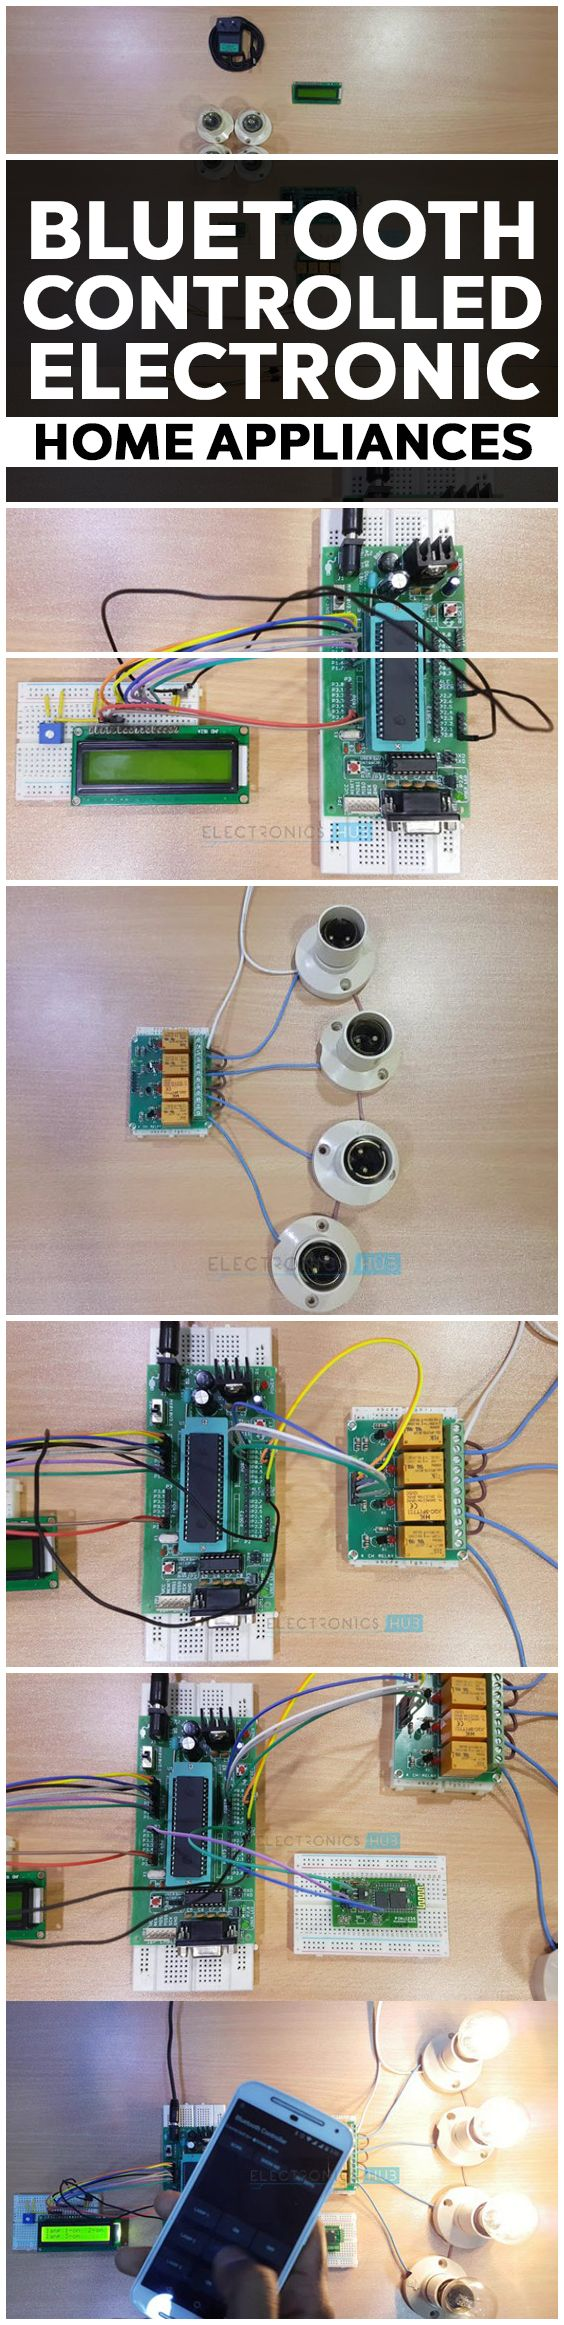 Bluetooth Controlled Electronic Home Appliances Arduino Cool Projects Electronics And Microcontrollers Is A Simple Project Where We Can Control Different Electrical Devices Using An